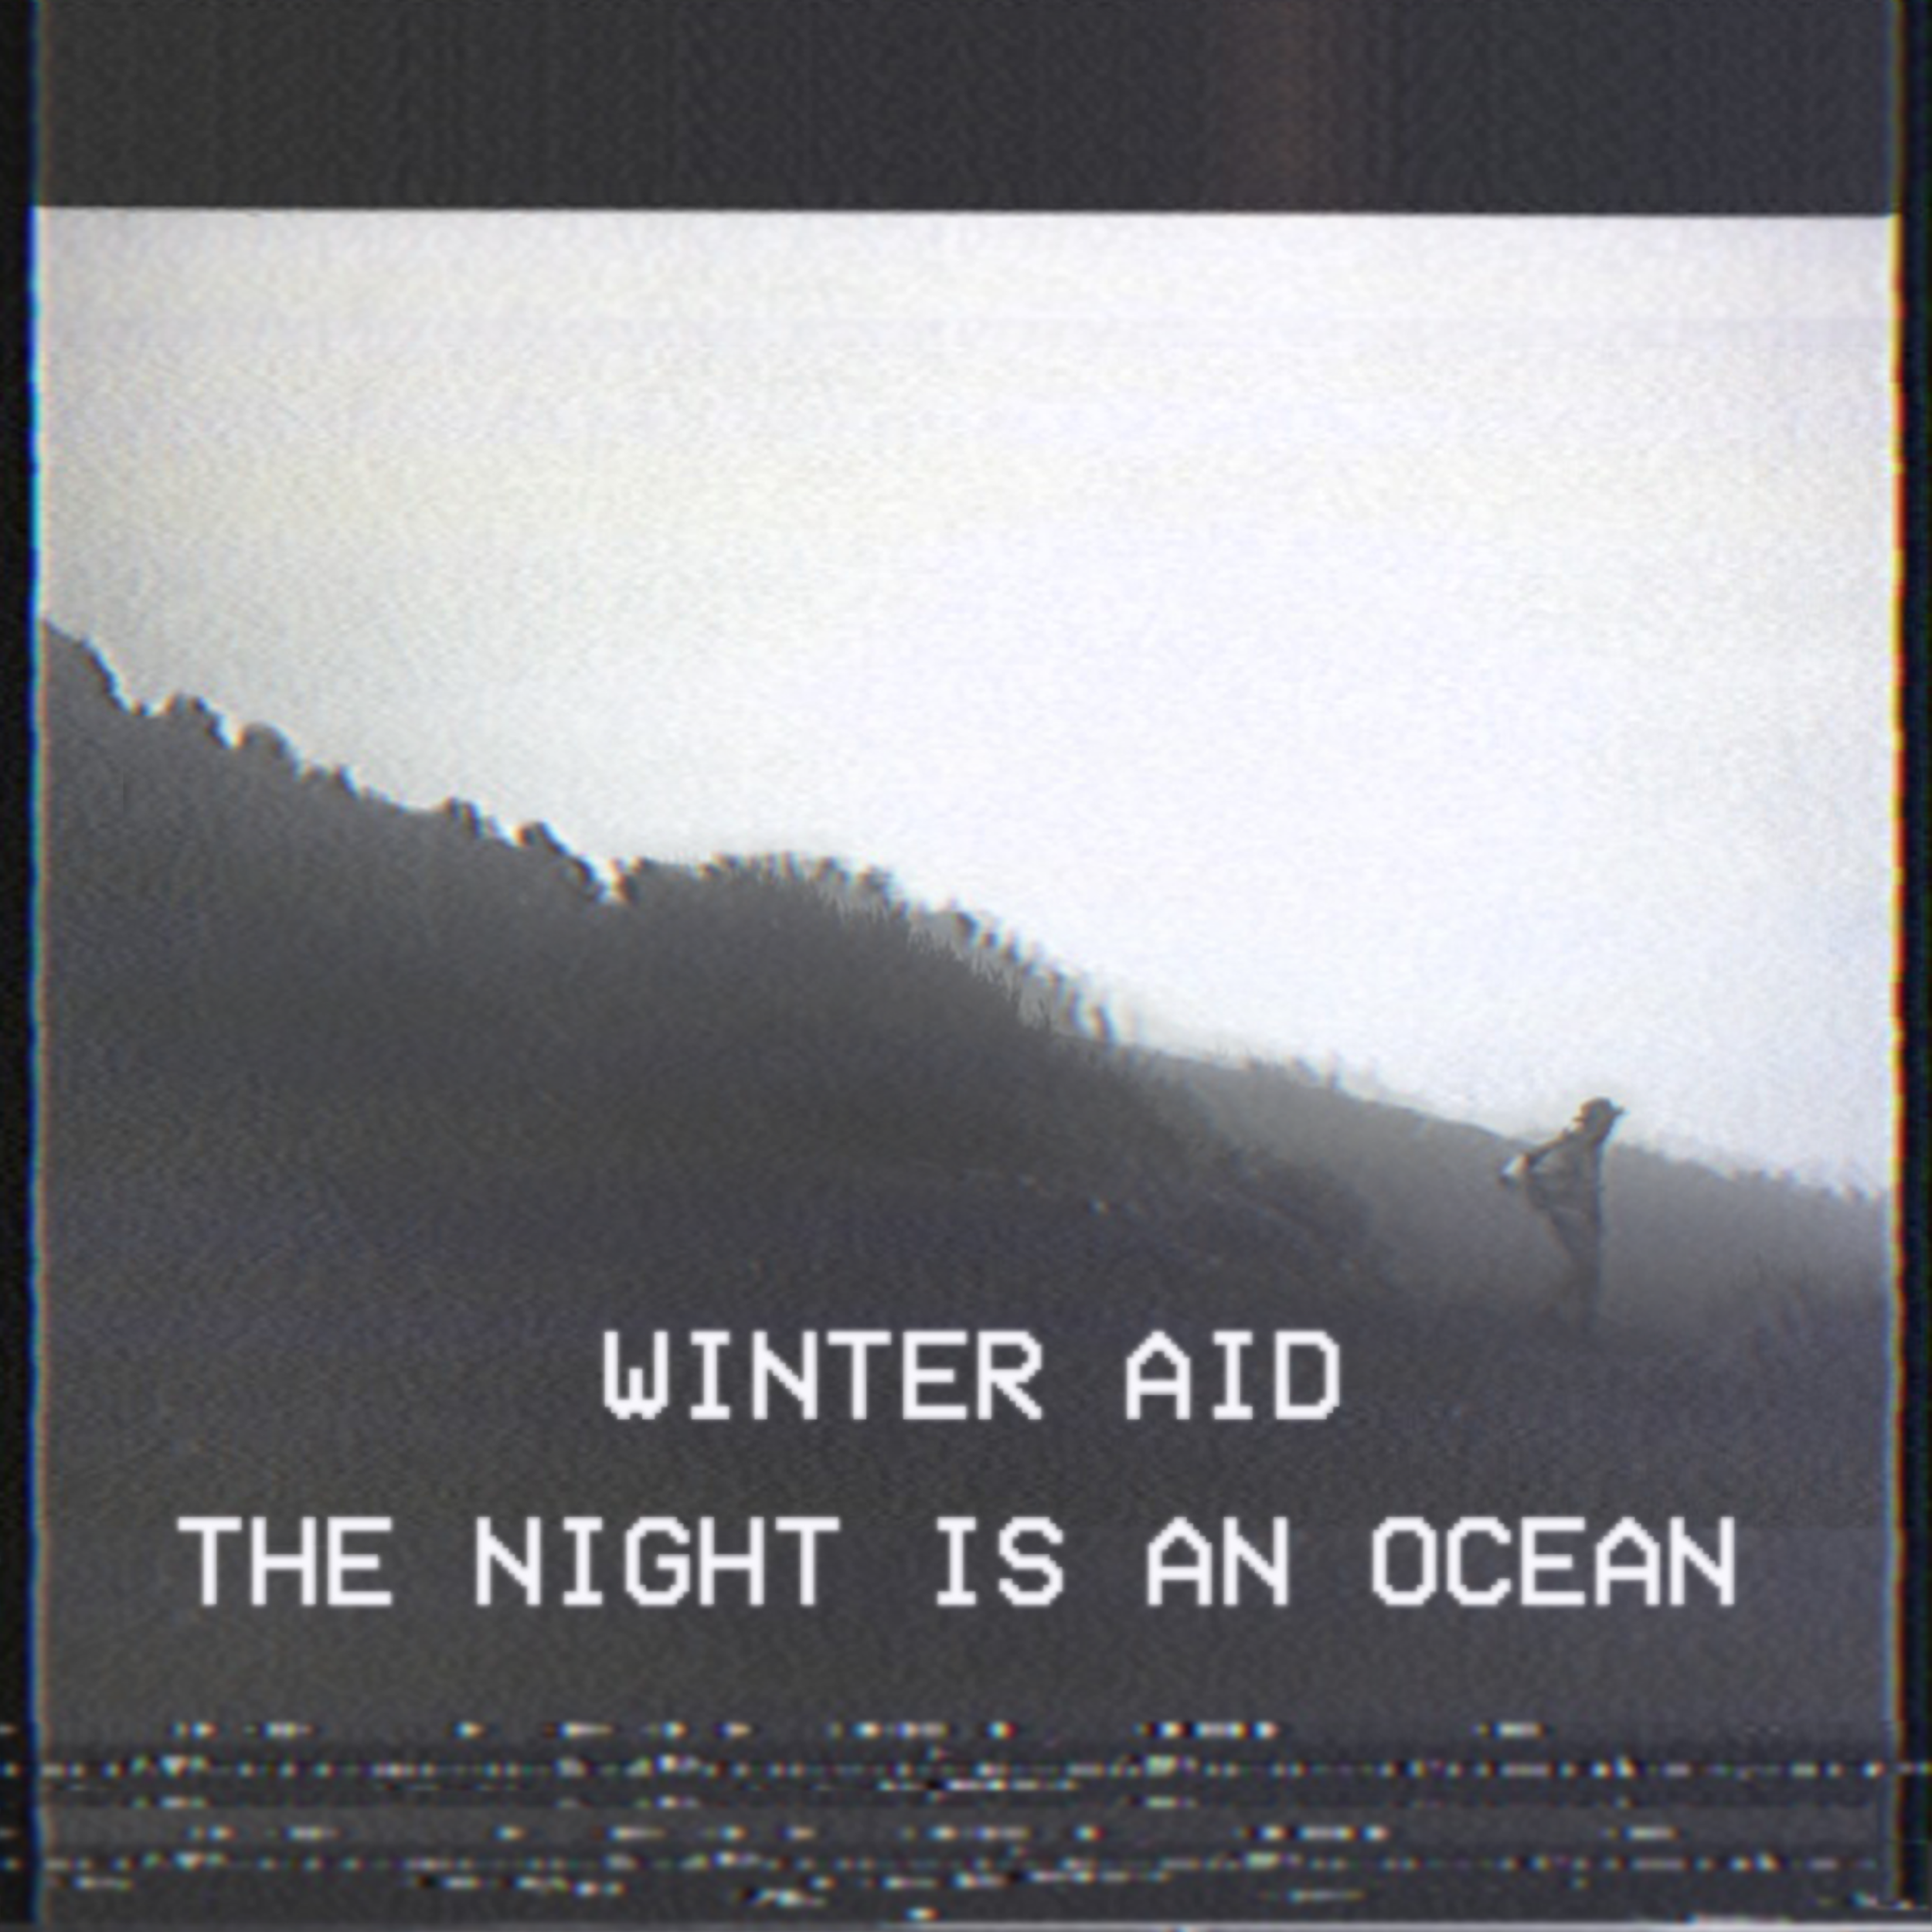 The Night is an Ocean. By  Winter Aid .